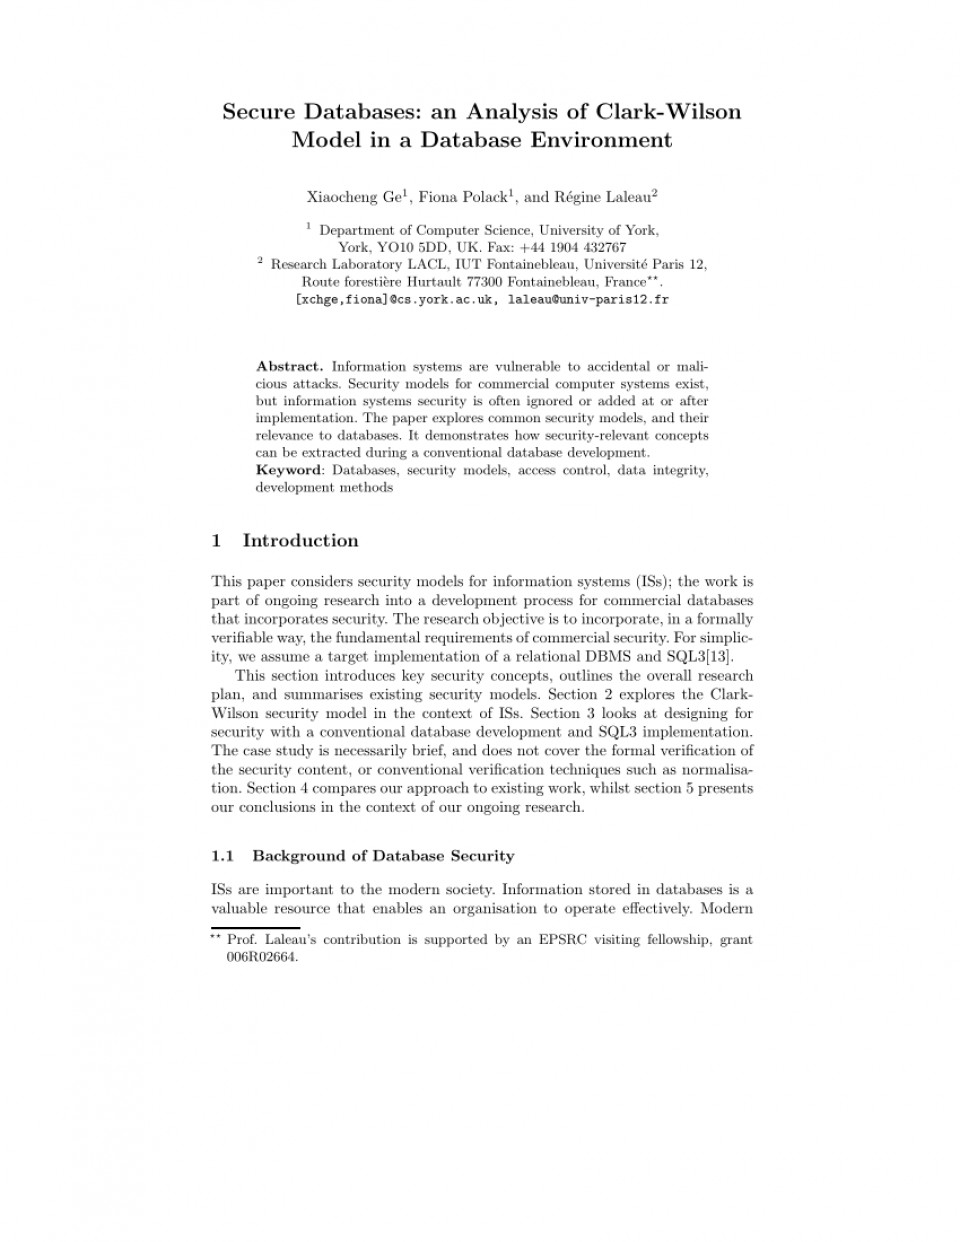 006 Database Security Research Paper Abstract Fascinating 960